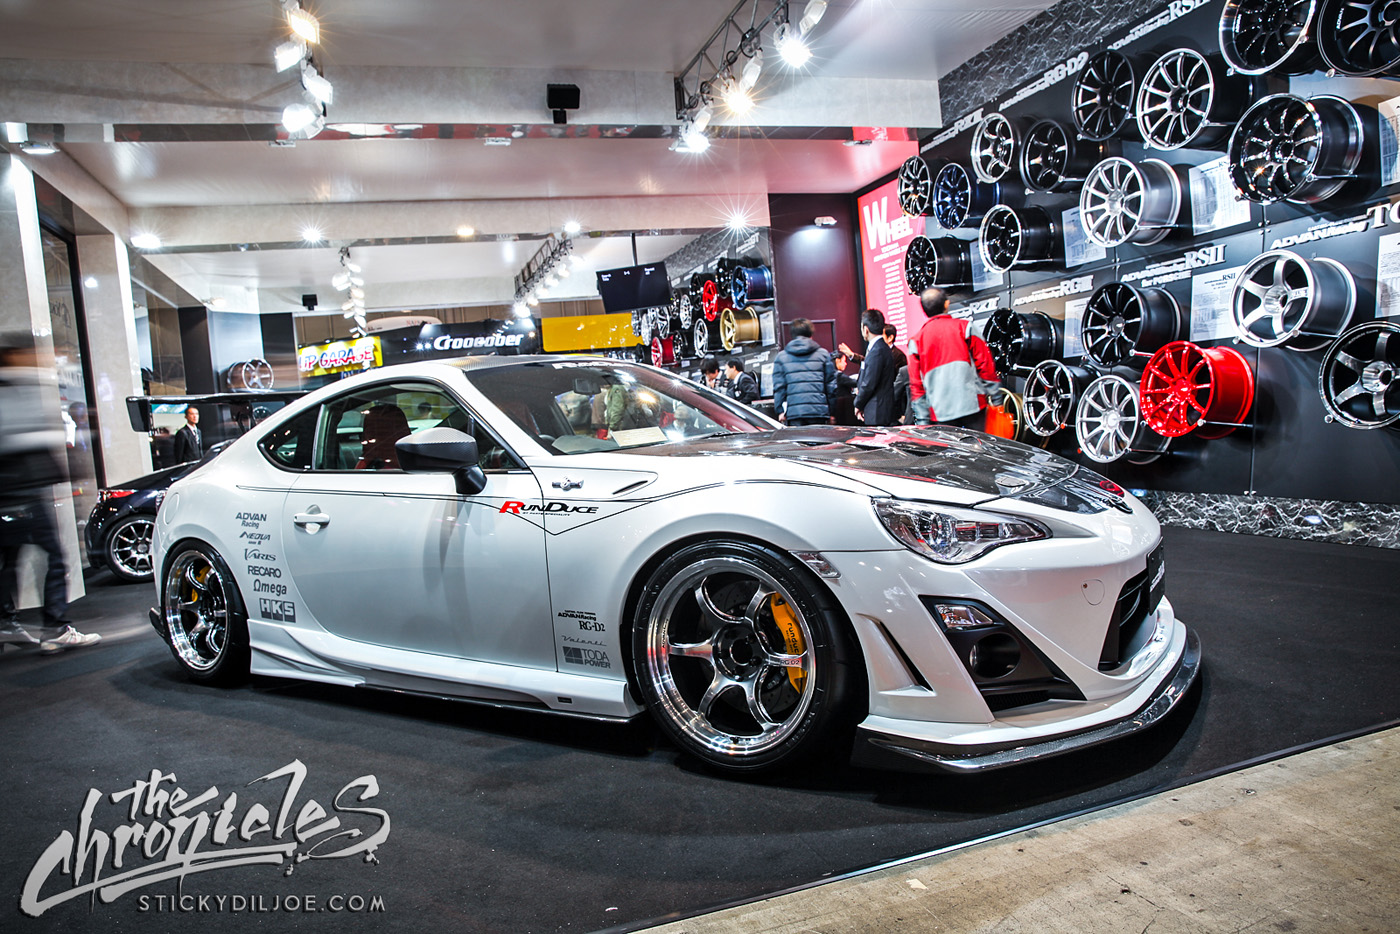 Tokyo Auto Salon 2016 Coverage Part 2 The Chronicles